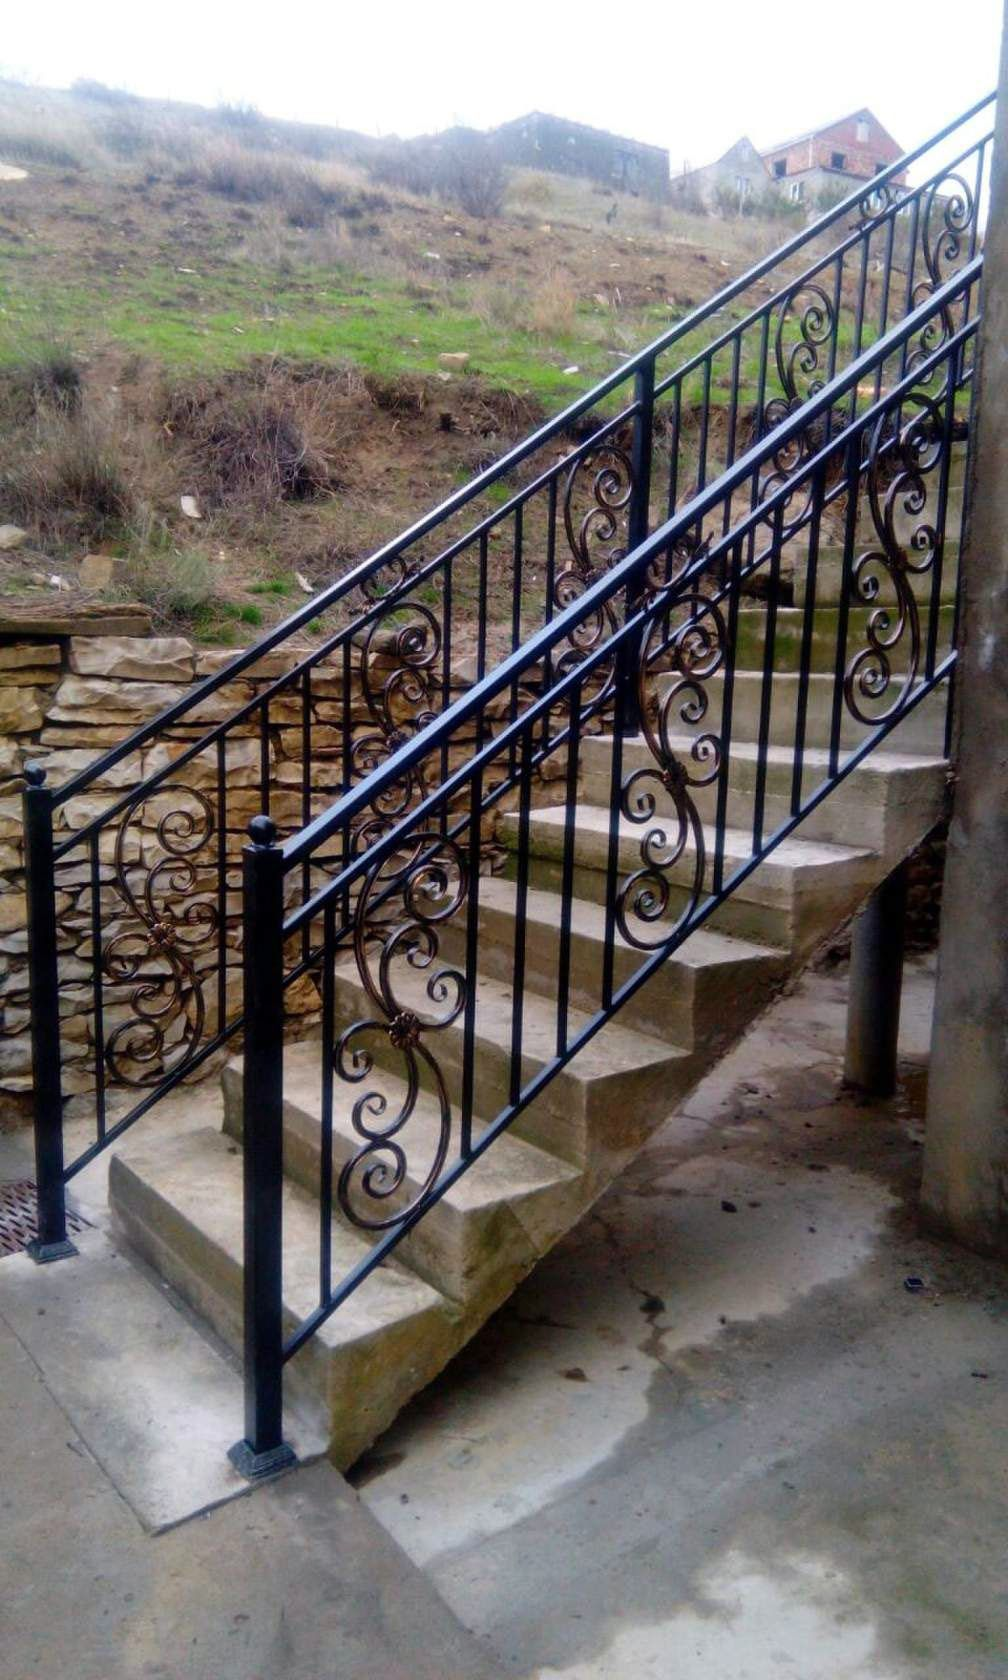 The Next Level 14 Stair Railings To Elevate Your Home Design | Outdoor Iron Staircase Designs | Gallery | Outdoor Balcony | Exterior | Curved Staircase Carpet | Wooden Staircase